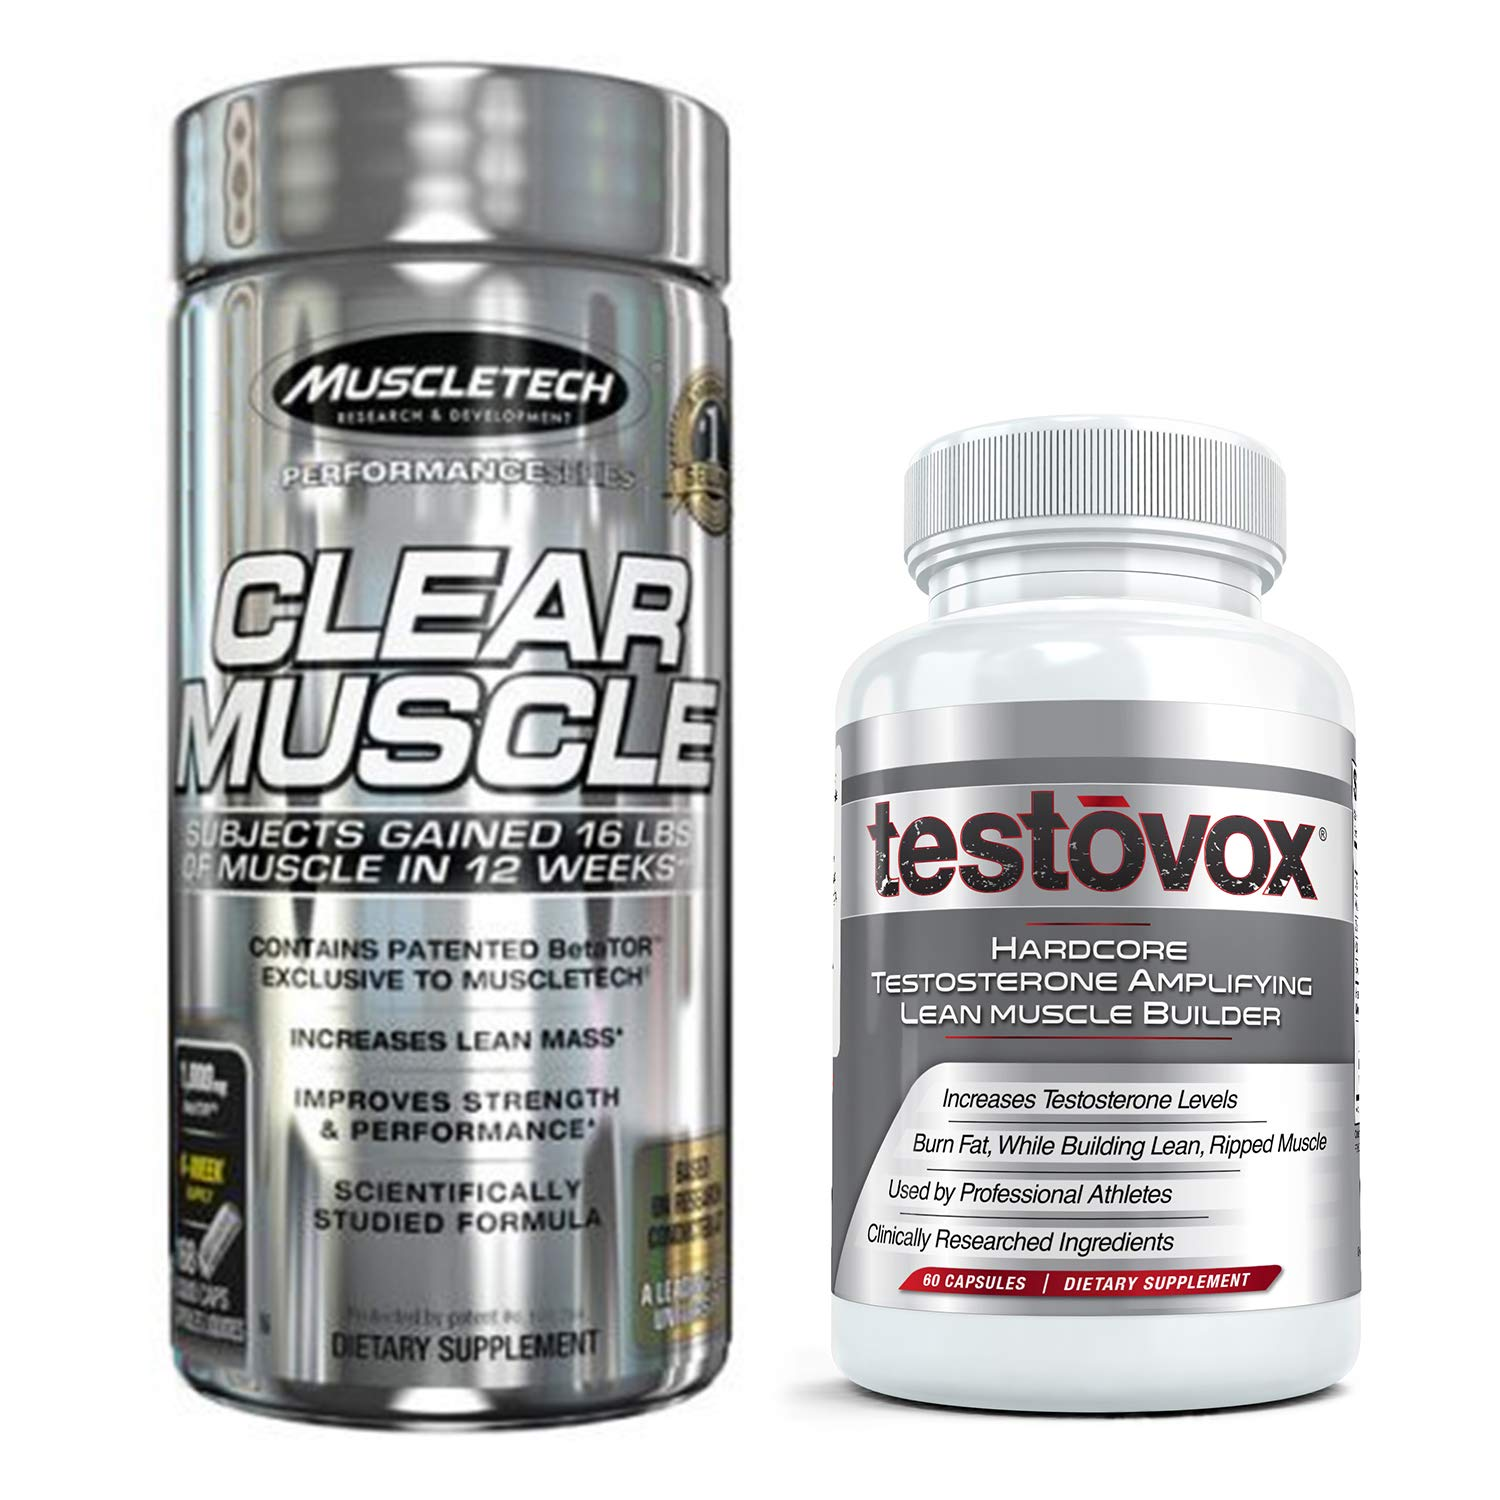 Clear Muscle (168 Capsules) & Testovox (60 Capsules) - Most Advanced Muscle & Strength Building Combo. High Performance Bodybuilding Supplement Stack by Muscle Tech Clear-Muscle